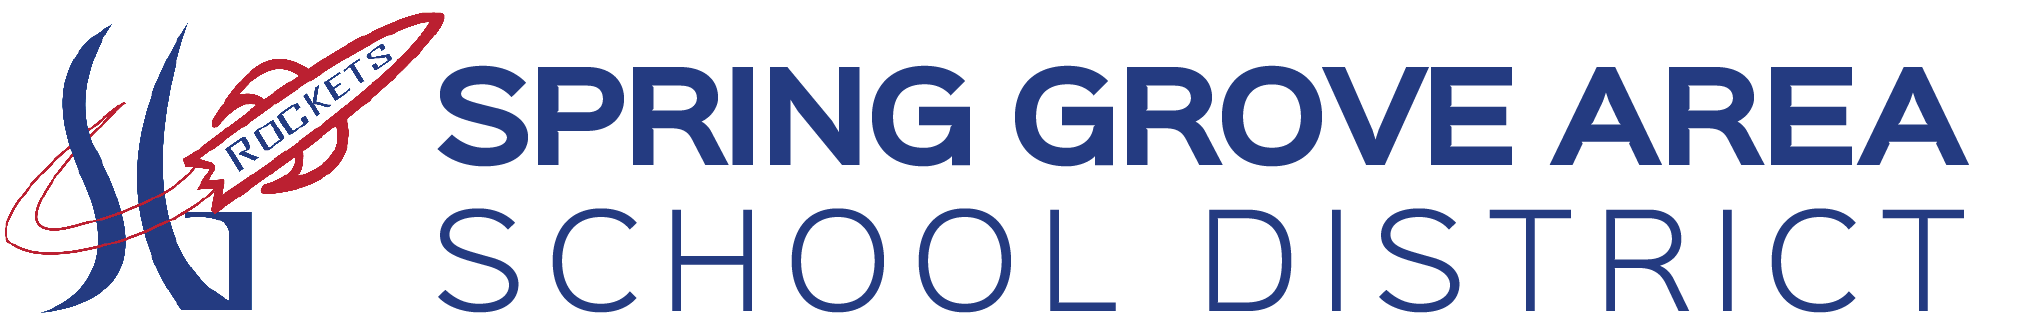 Spring Grove Area School District Homepage